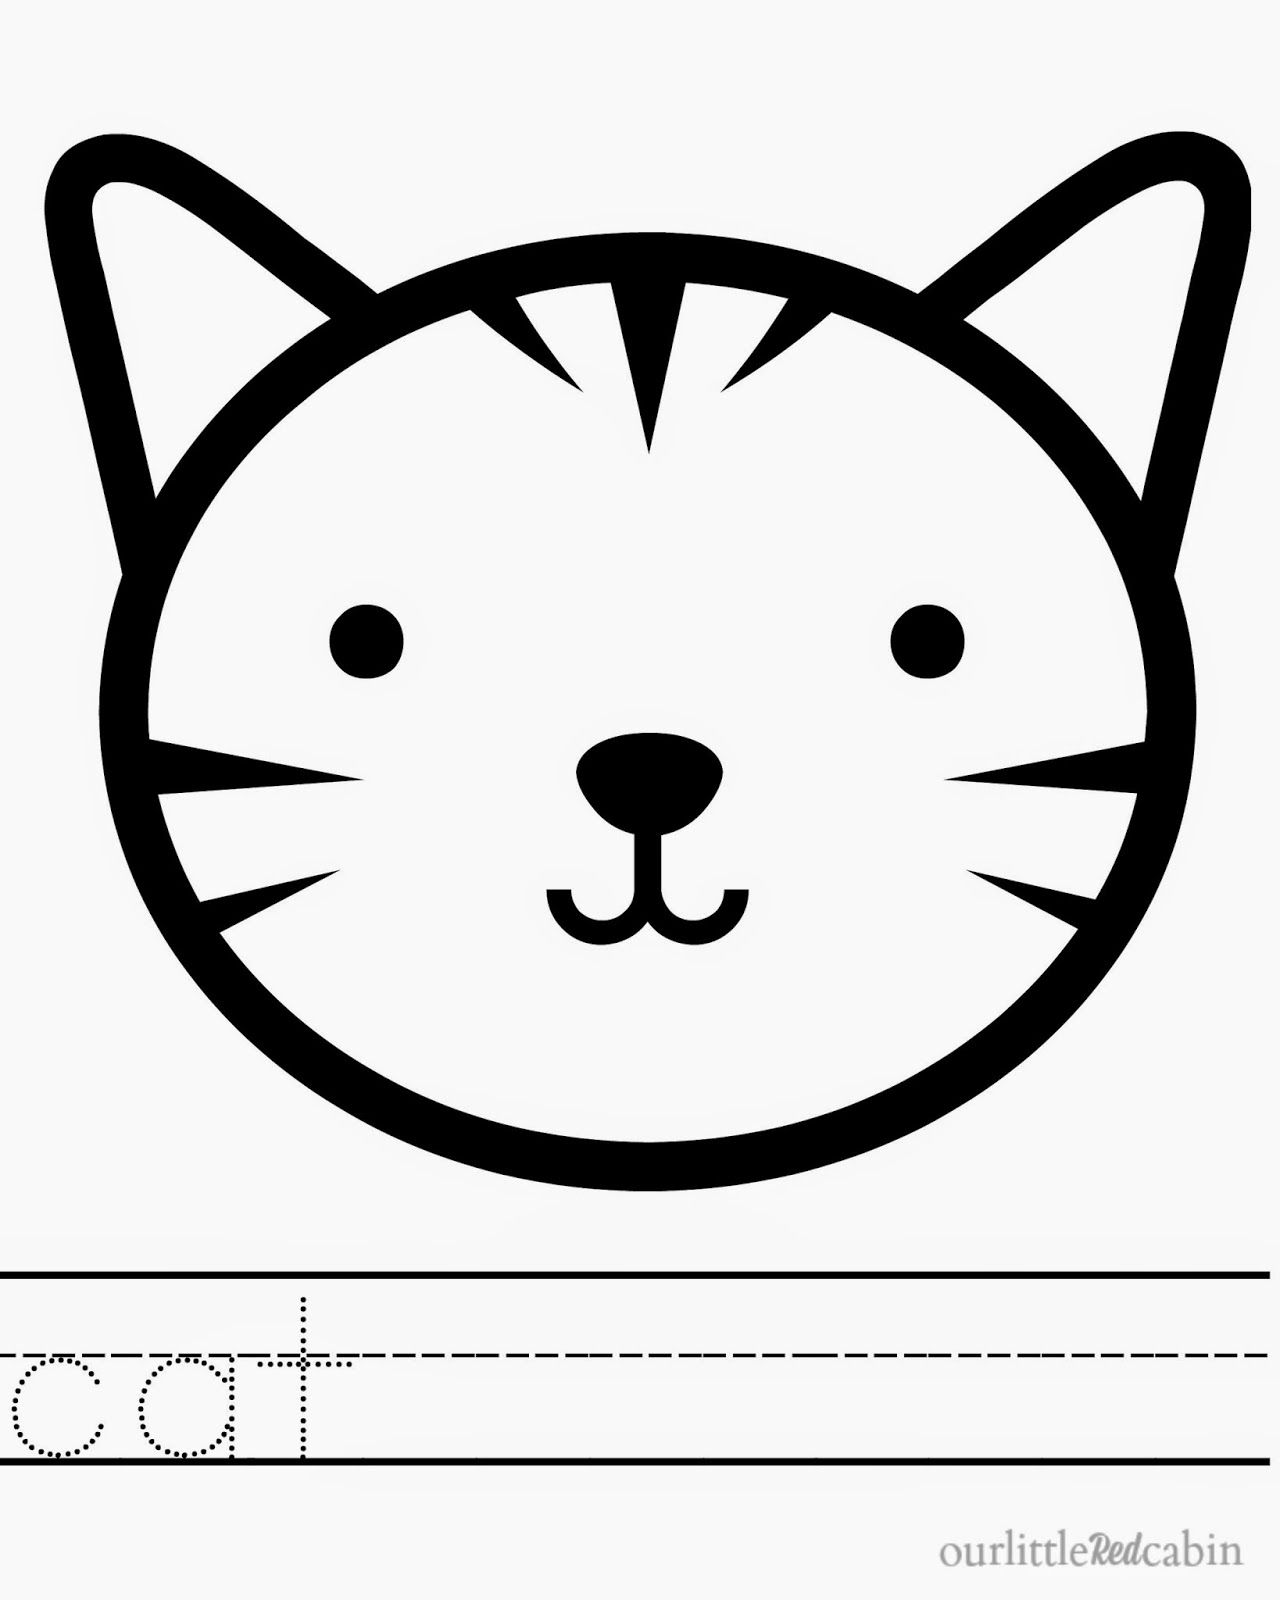 Our Little Red Cabin Animal Printing Coloring Page Free